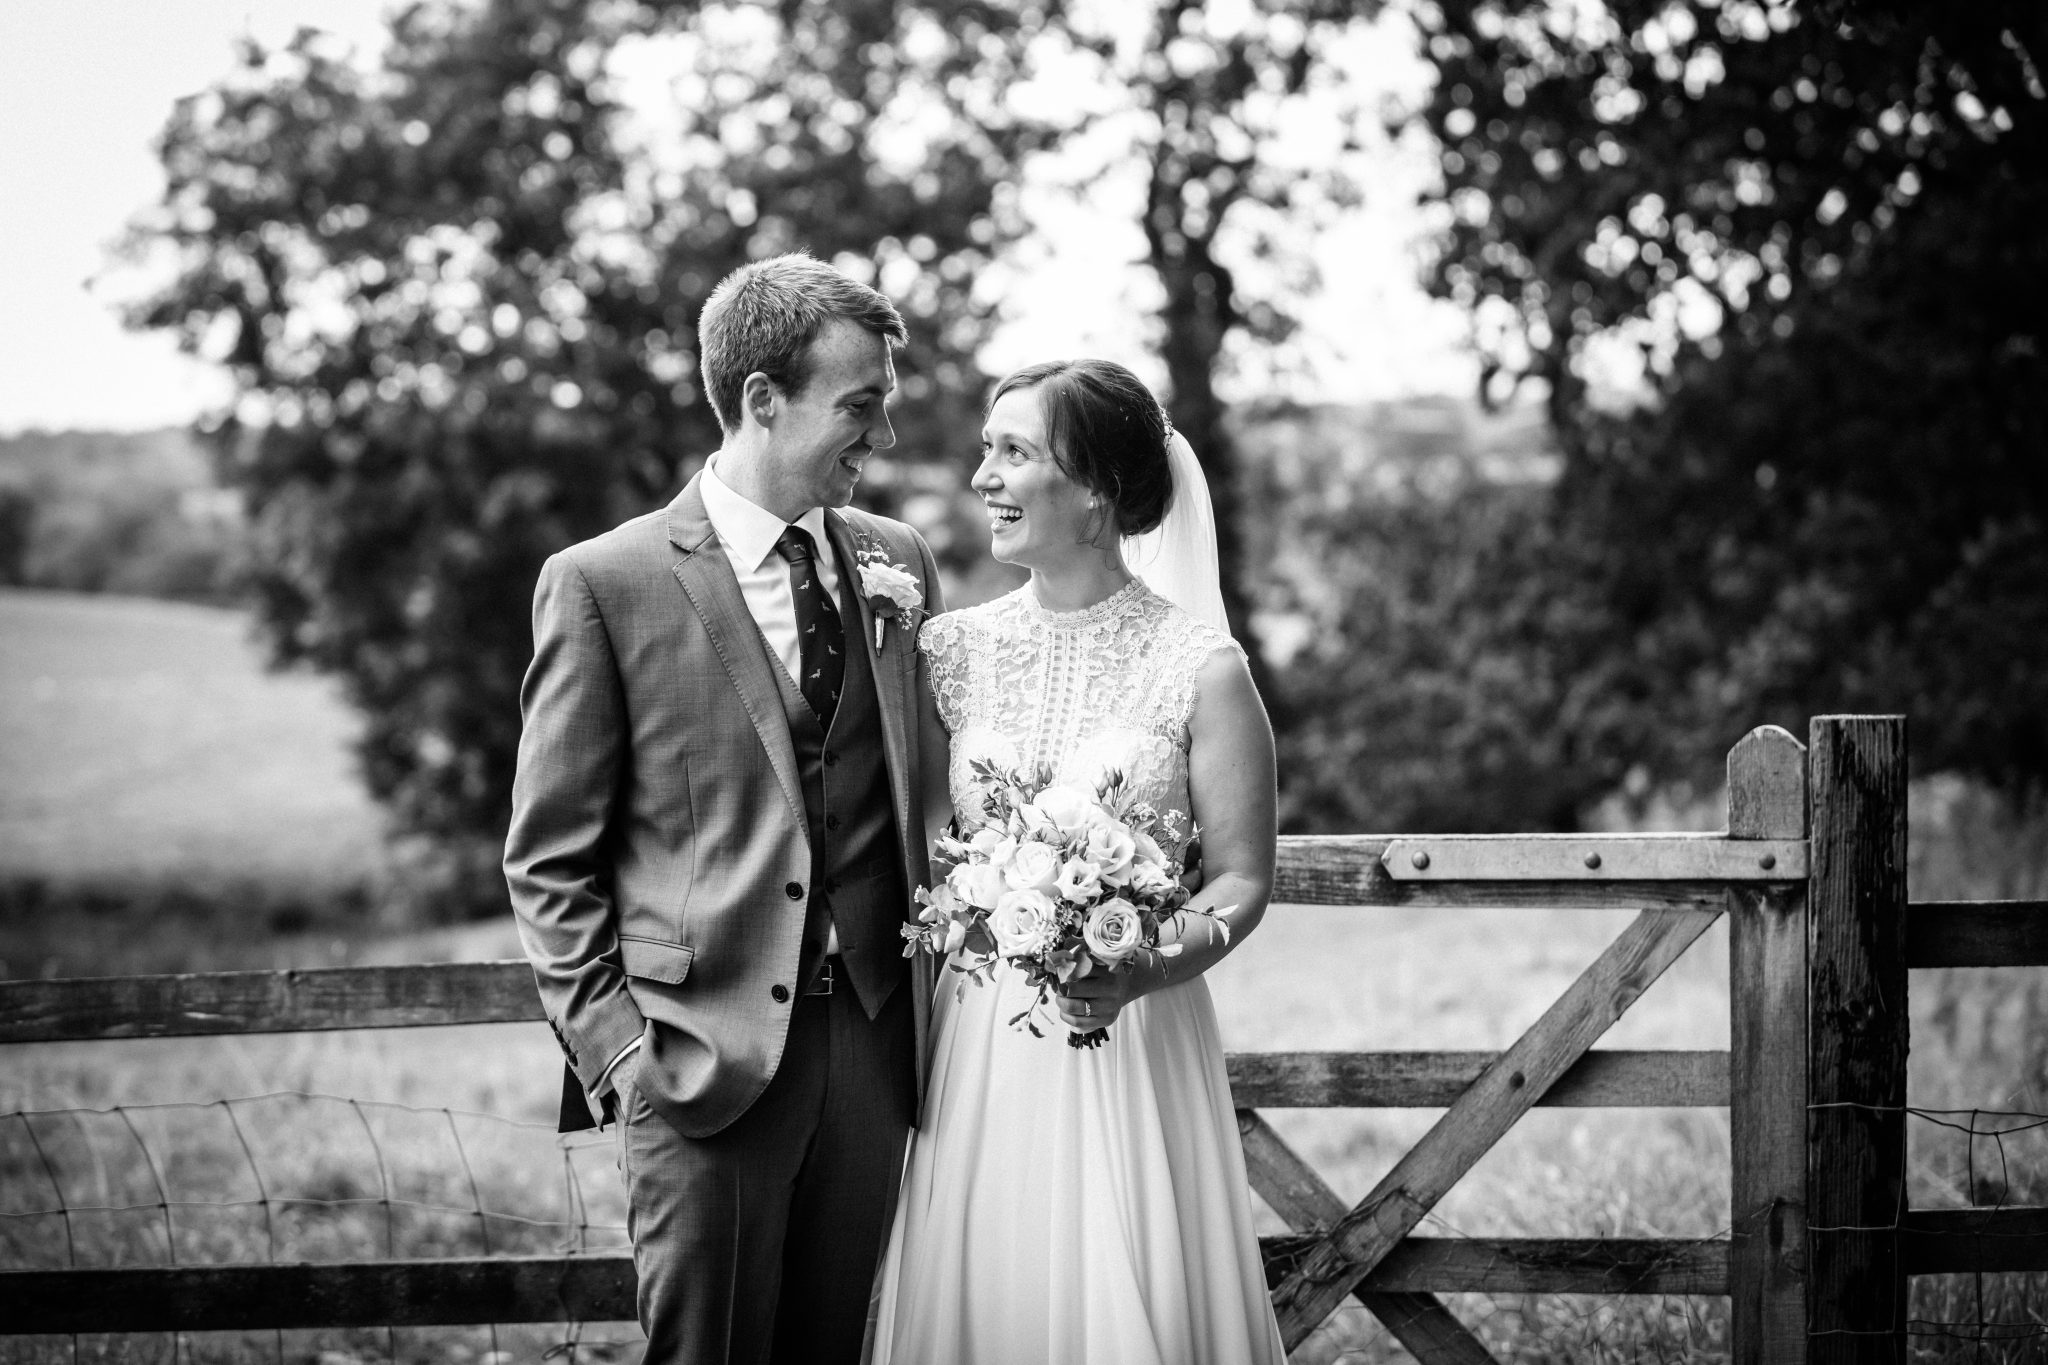 Country wedding photographer Joanna Eardley